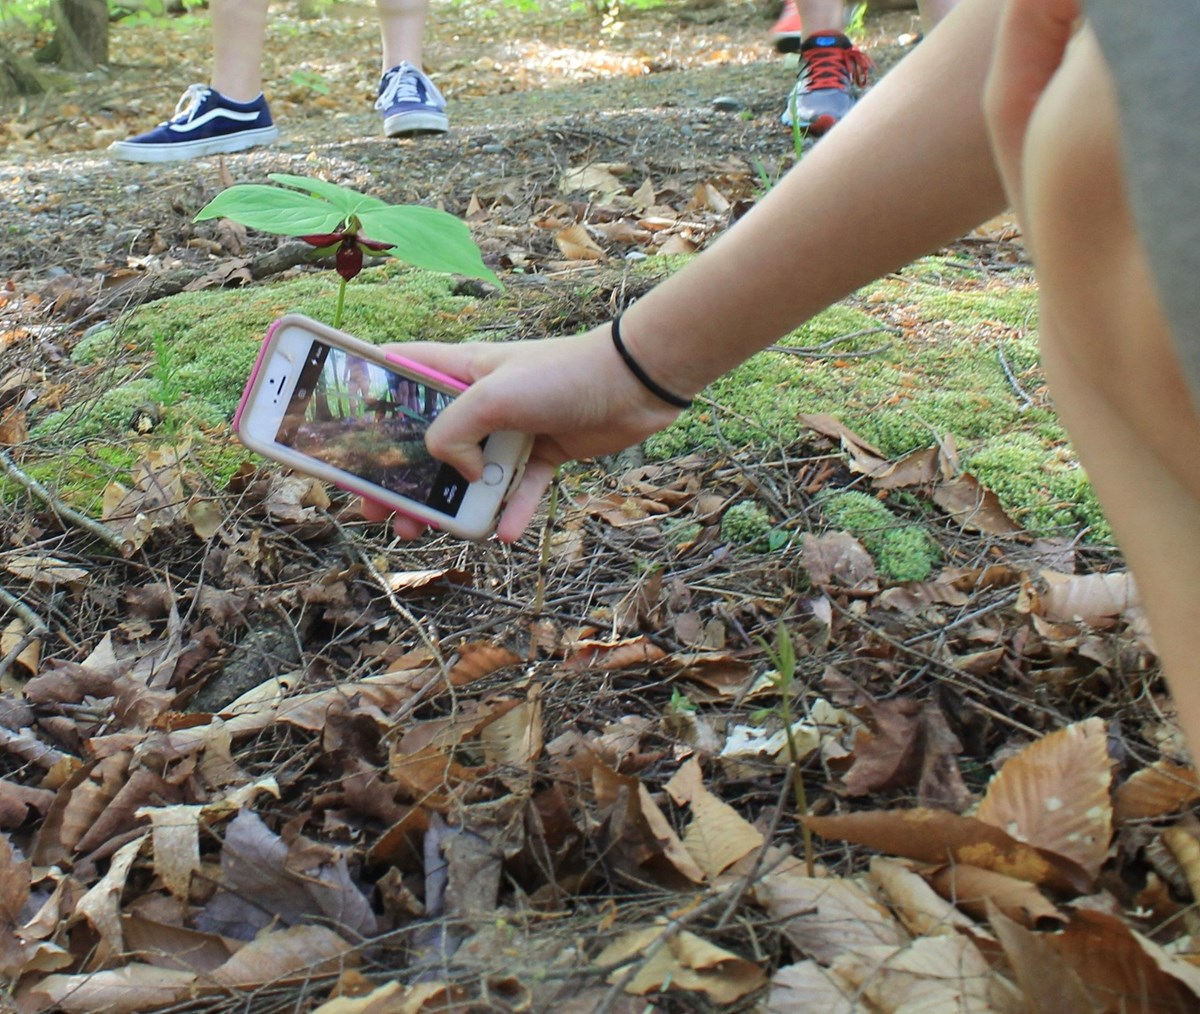 iNaturalist Cell phone app - hand holding cell phone